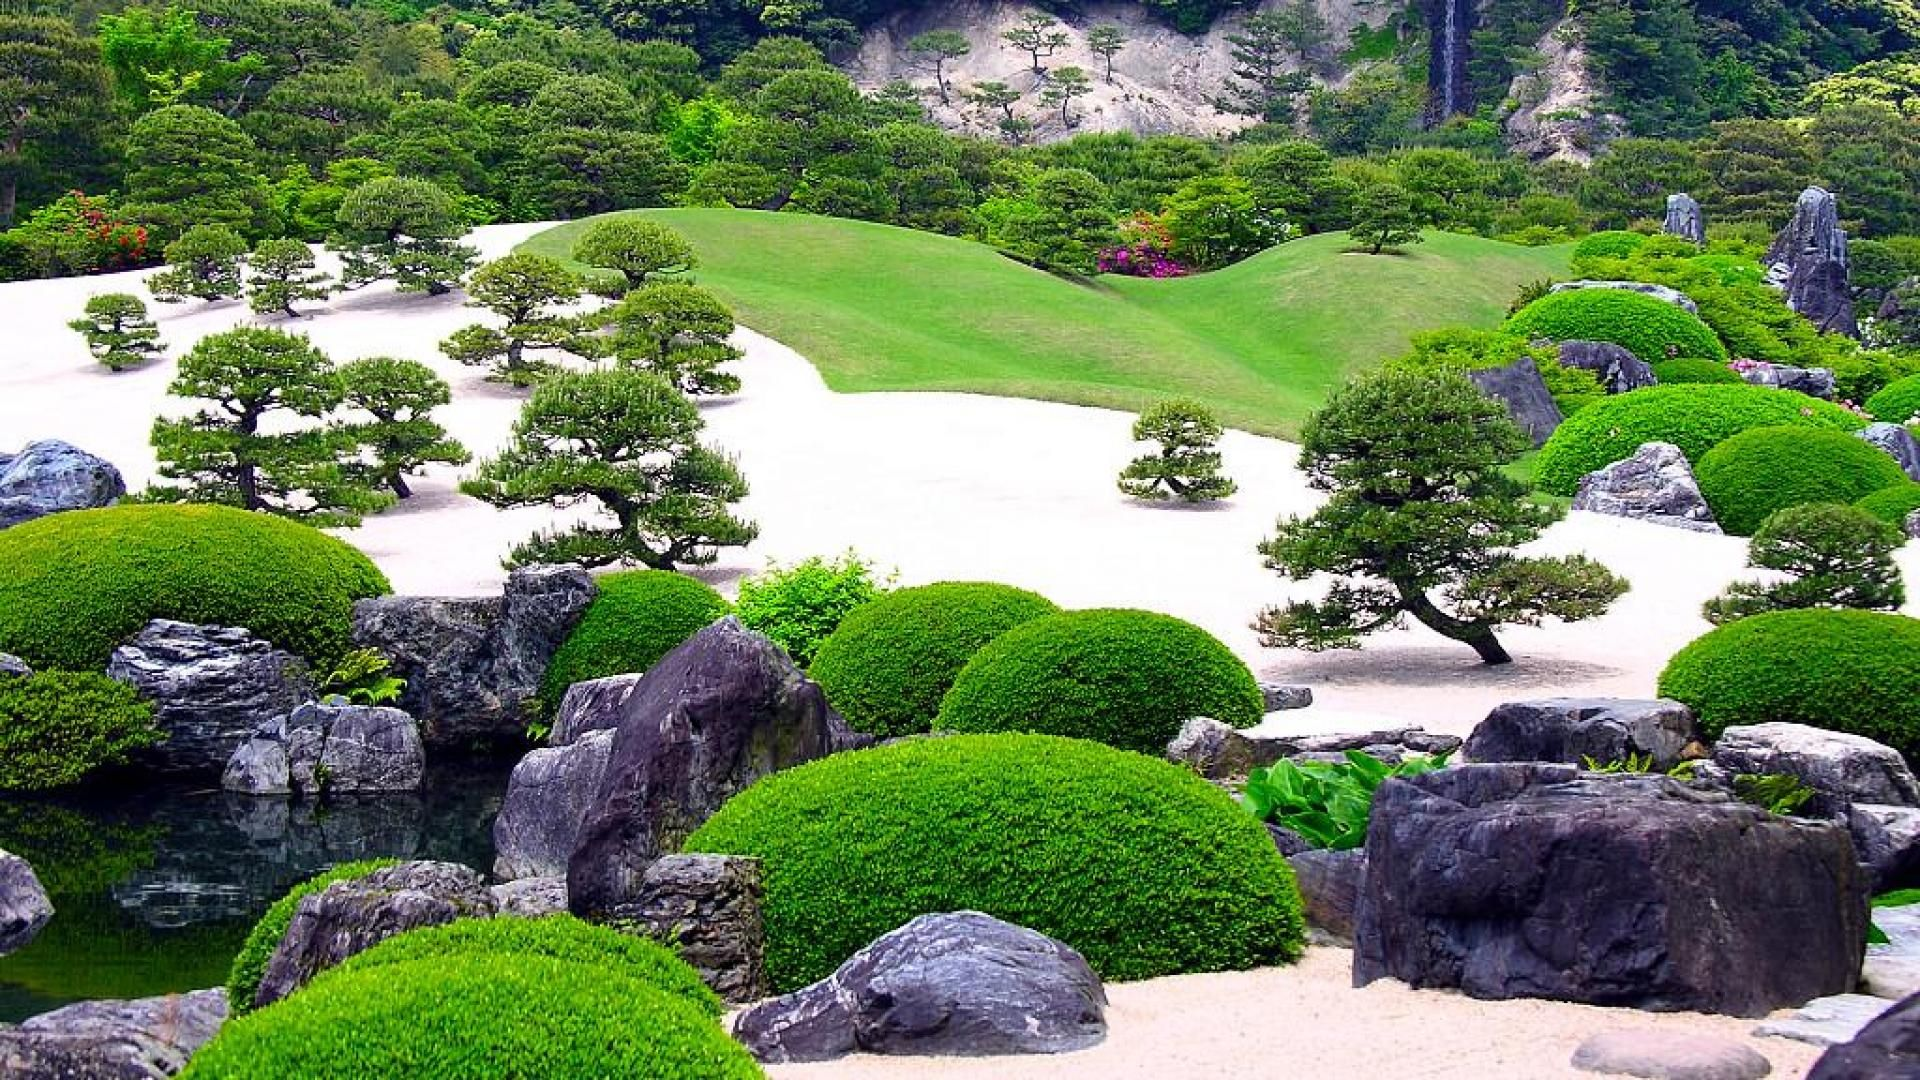 Japanese Garden Wallpaper 1920x1080 Amazing Design 415442